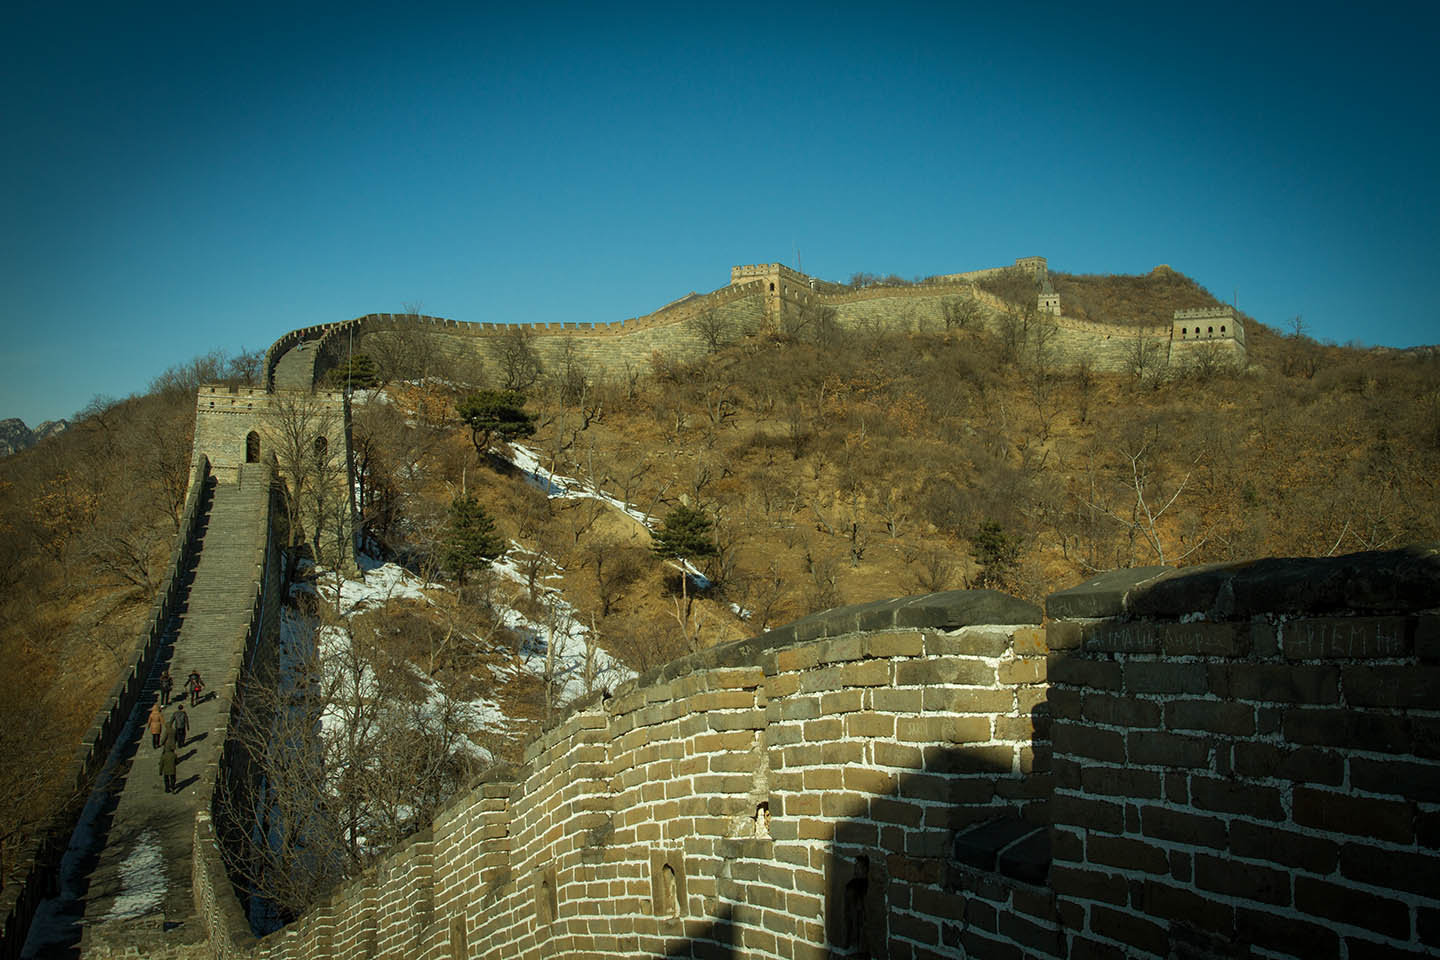 Walking on the Great Wall of China / Auf der chinesische Mauer laufen